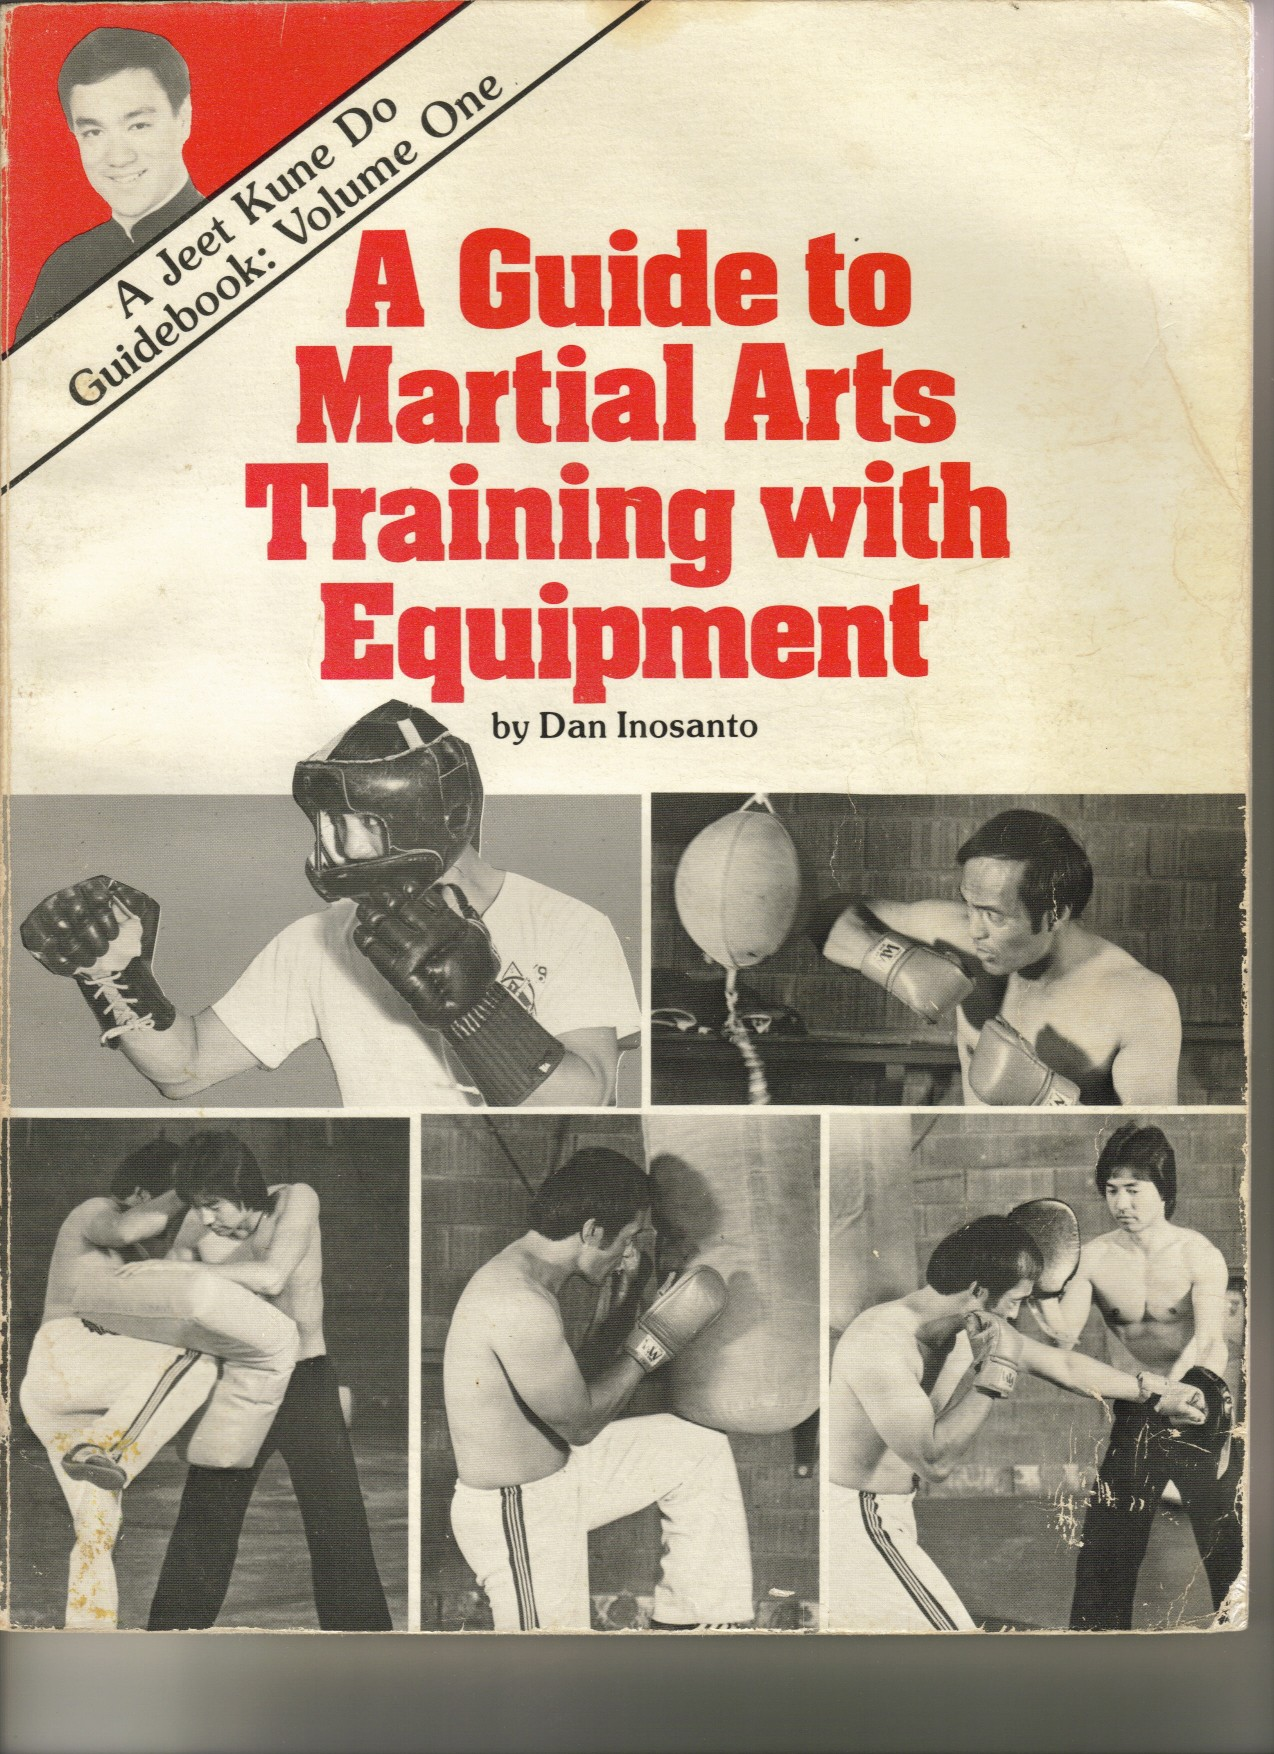 Guide to MA Equipment